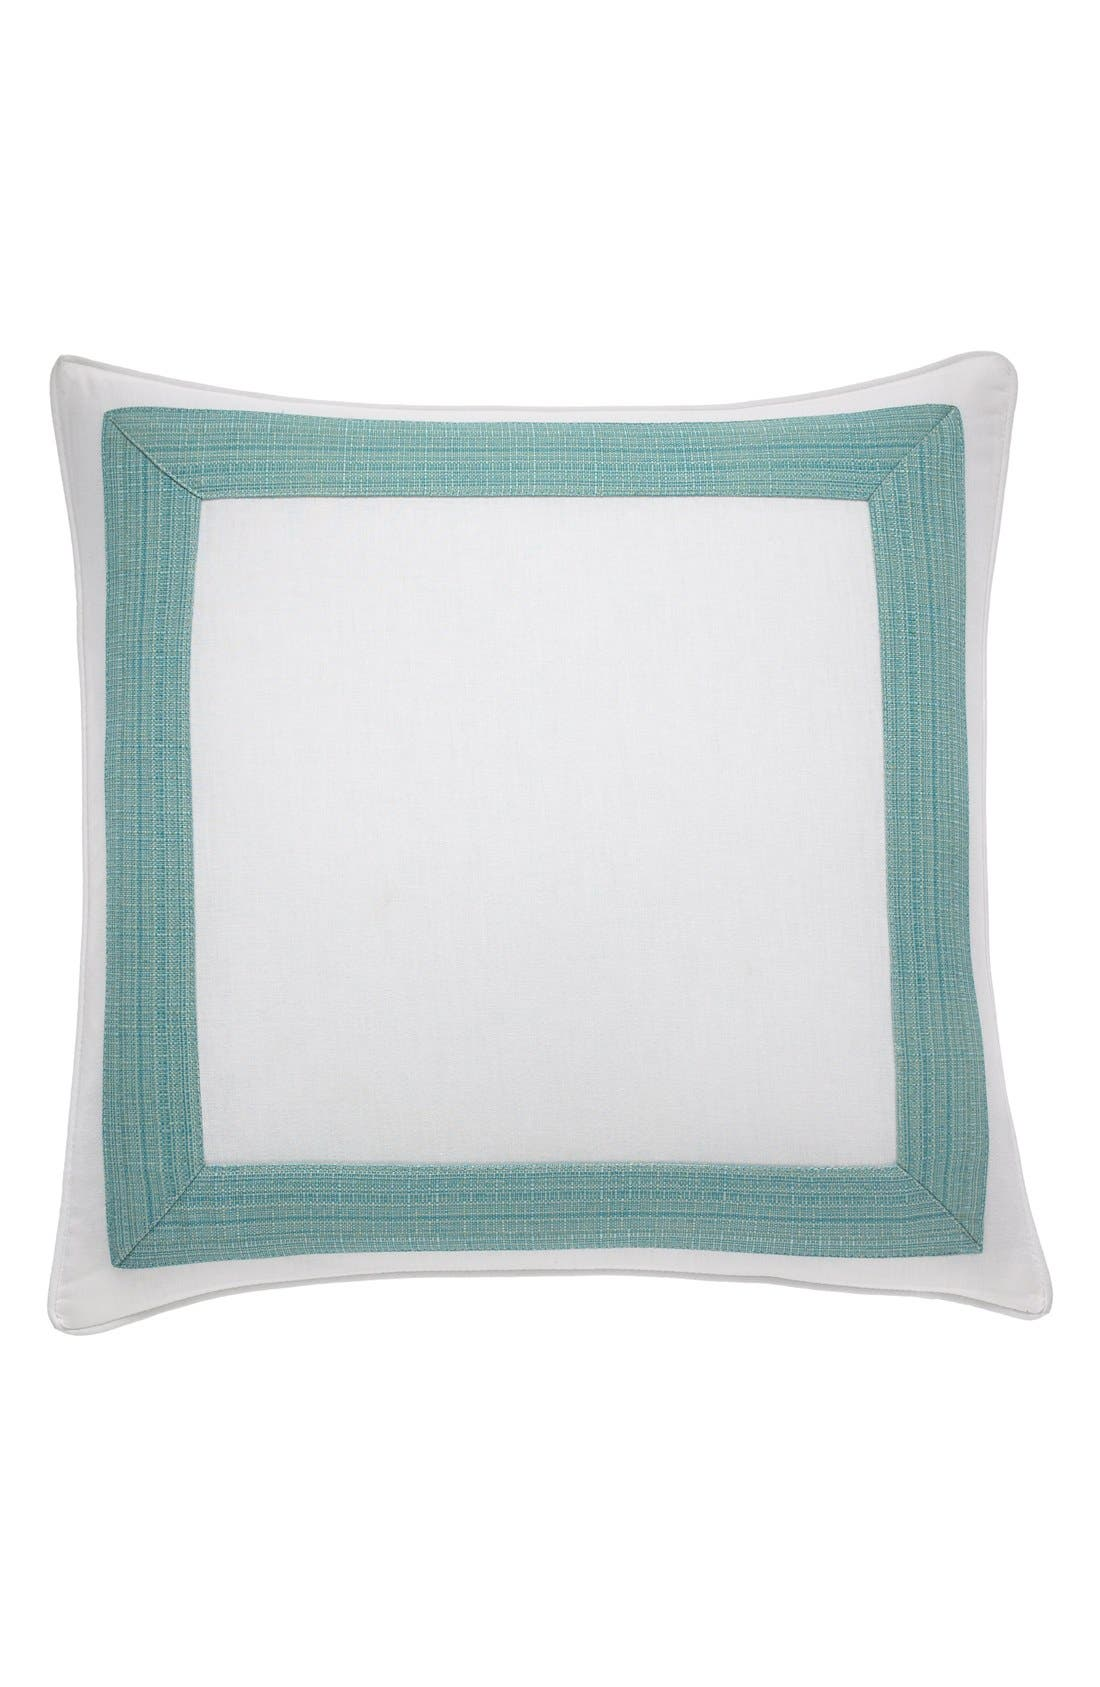 Tommy Bahama 'Seaglass Border' Pillow